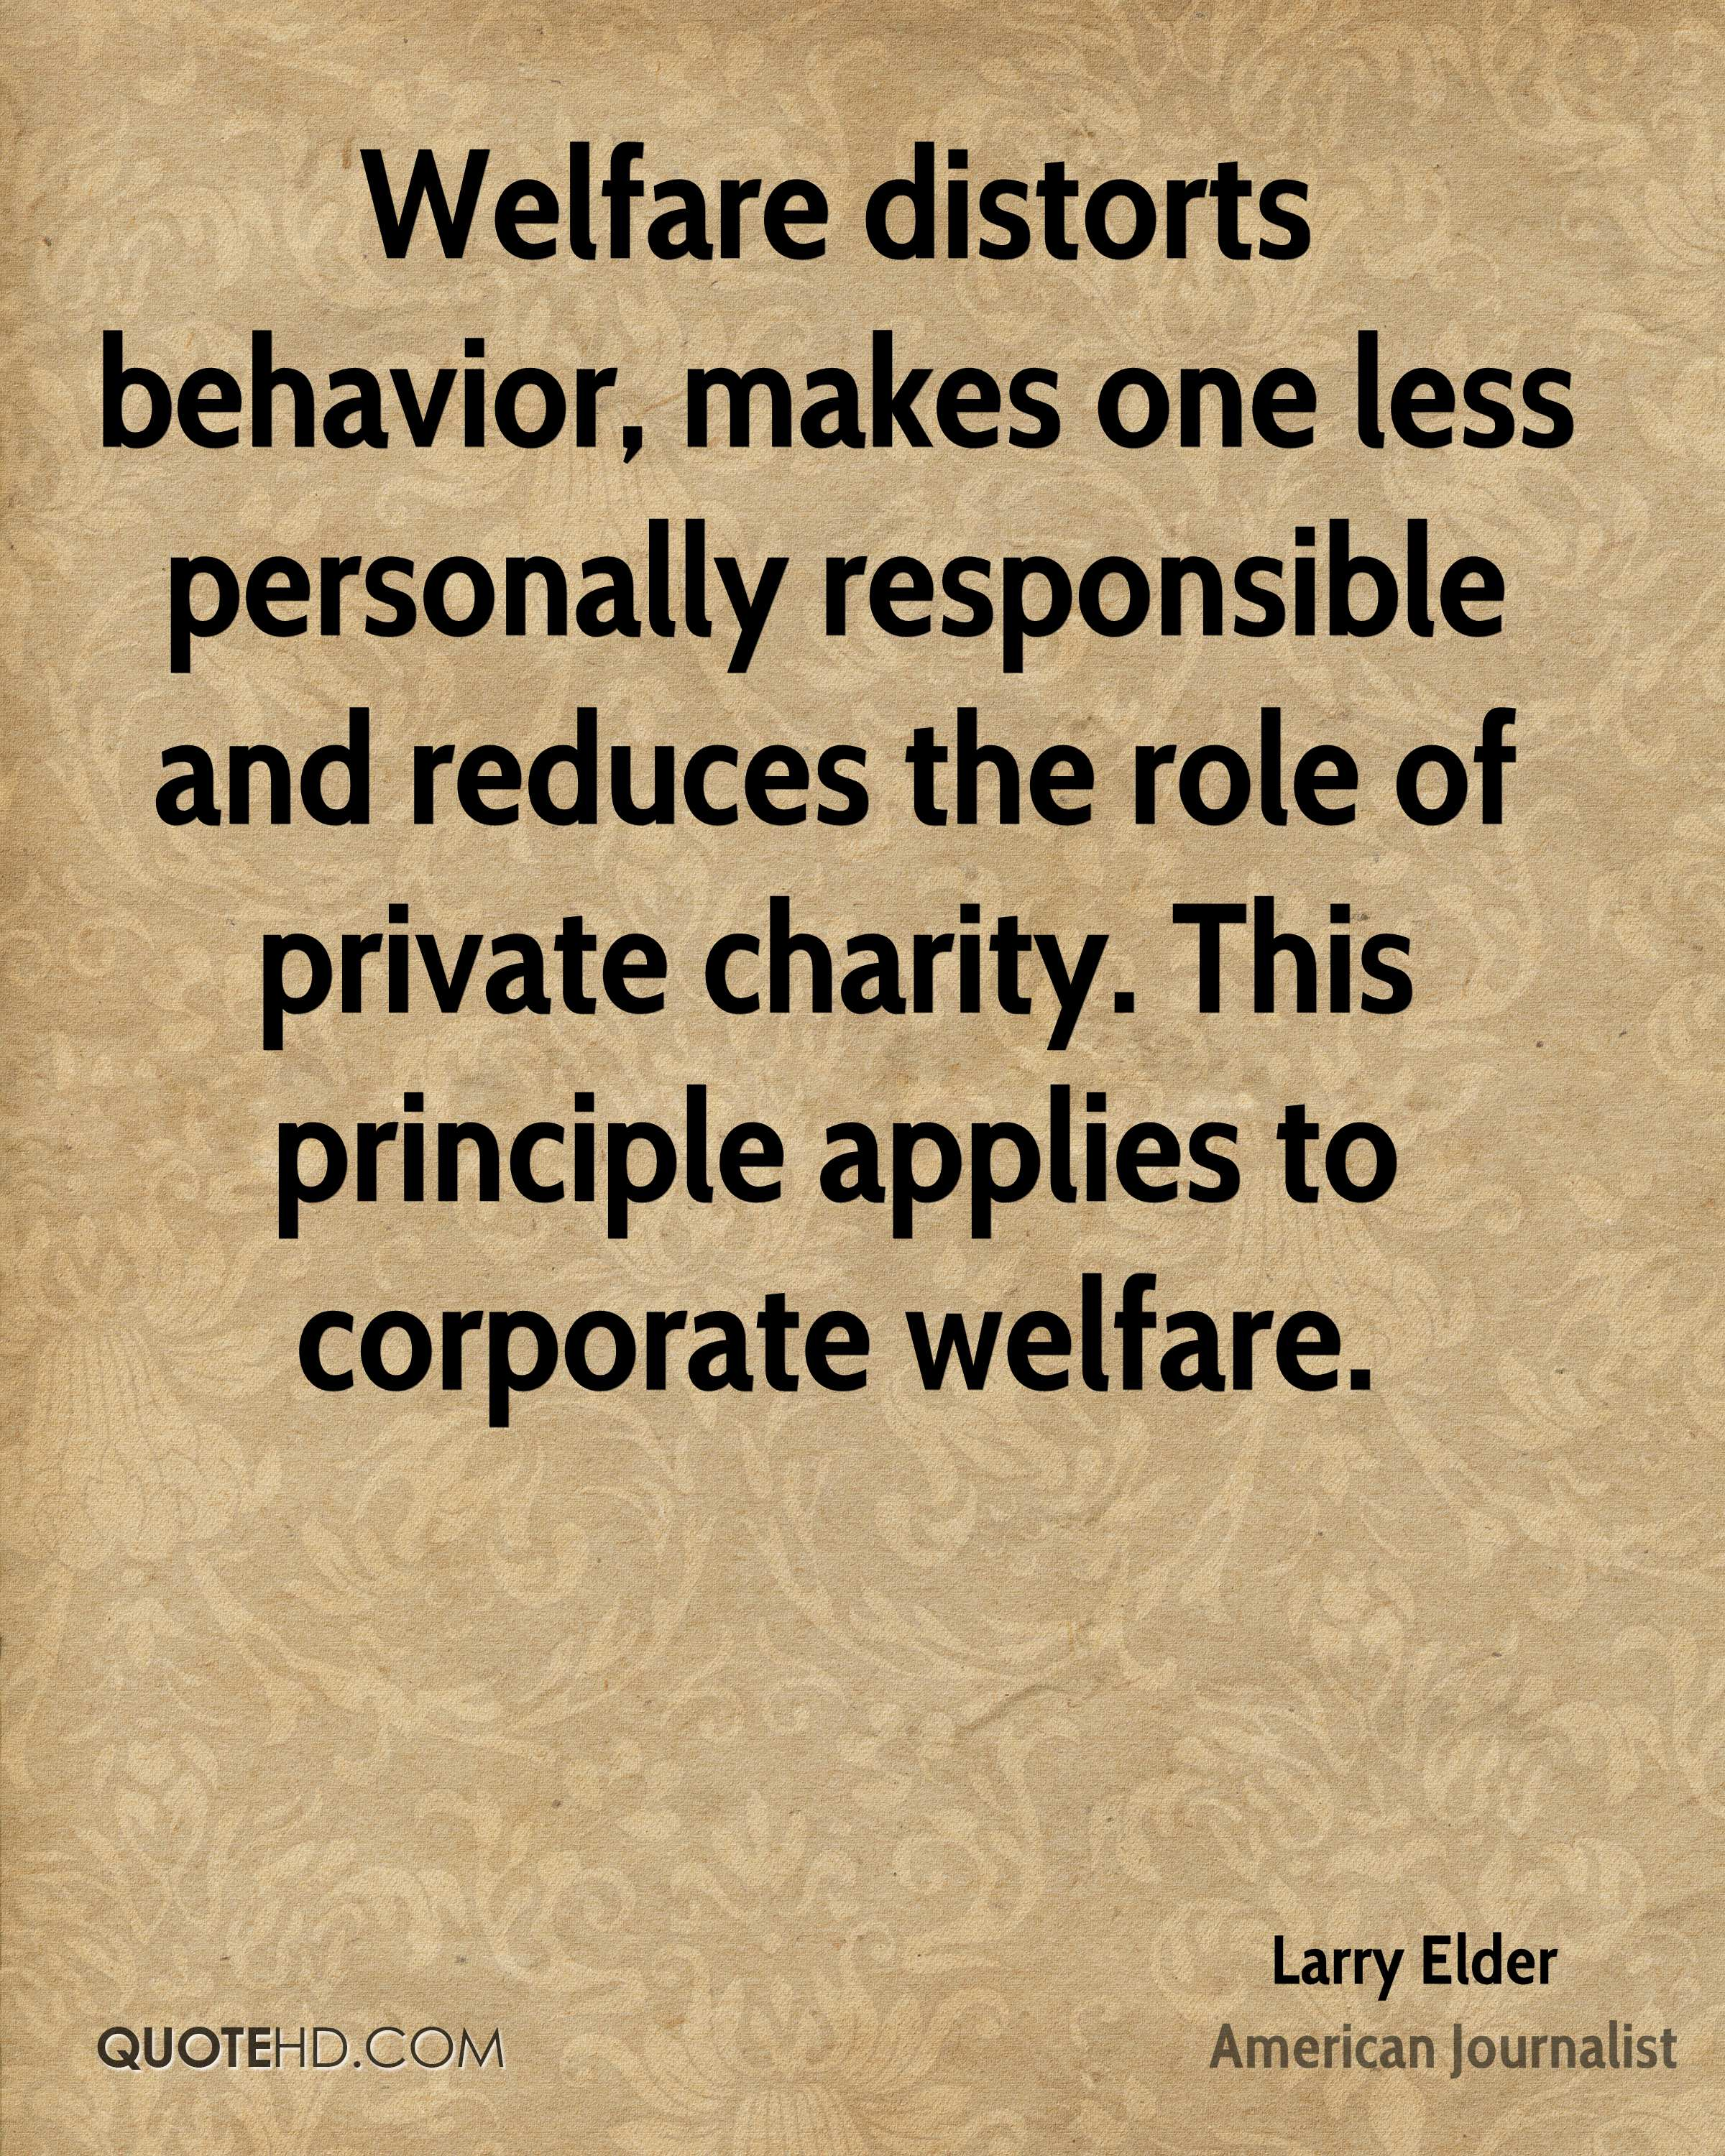 Welfare distorts behavior, makes one less personally responsible and reduces the role of private charity. This principle applies to corporate welfare.